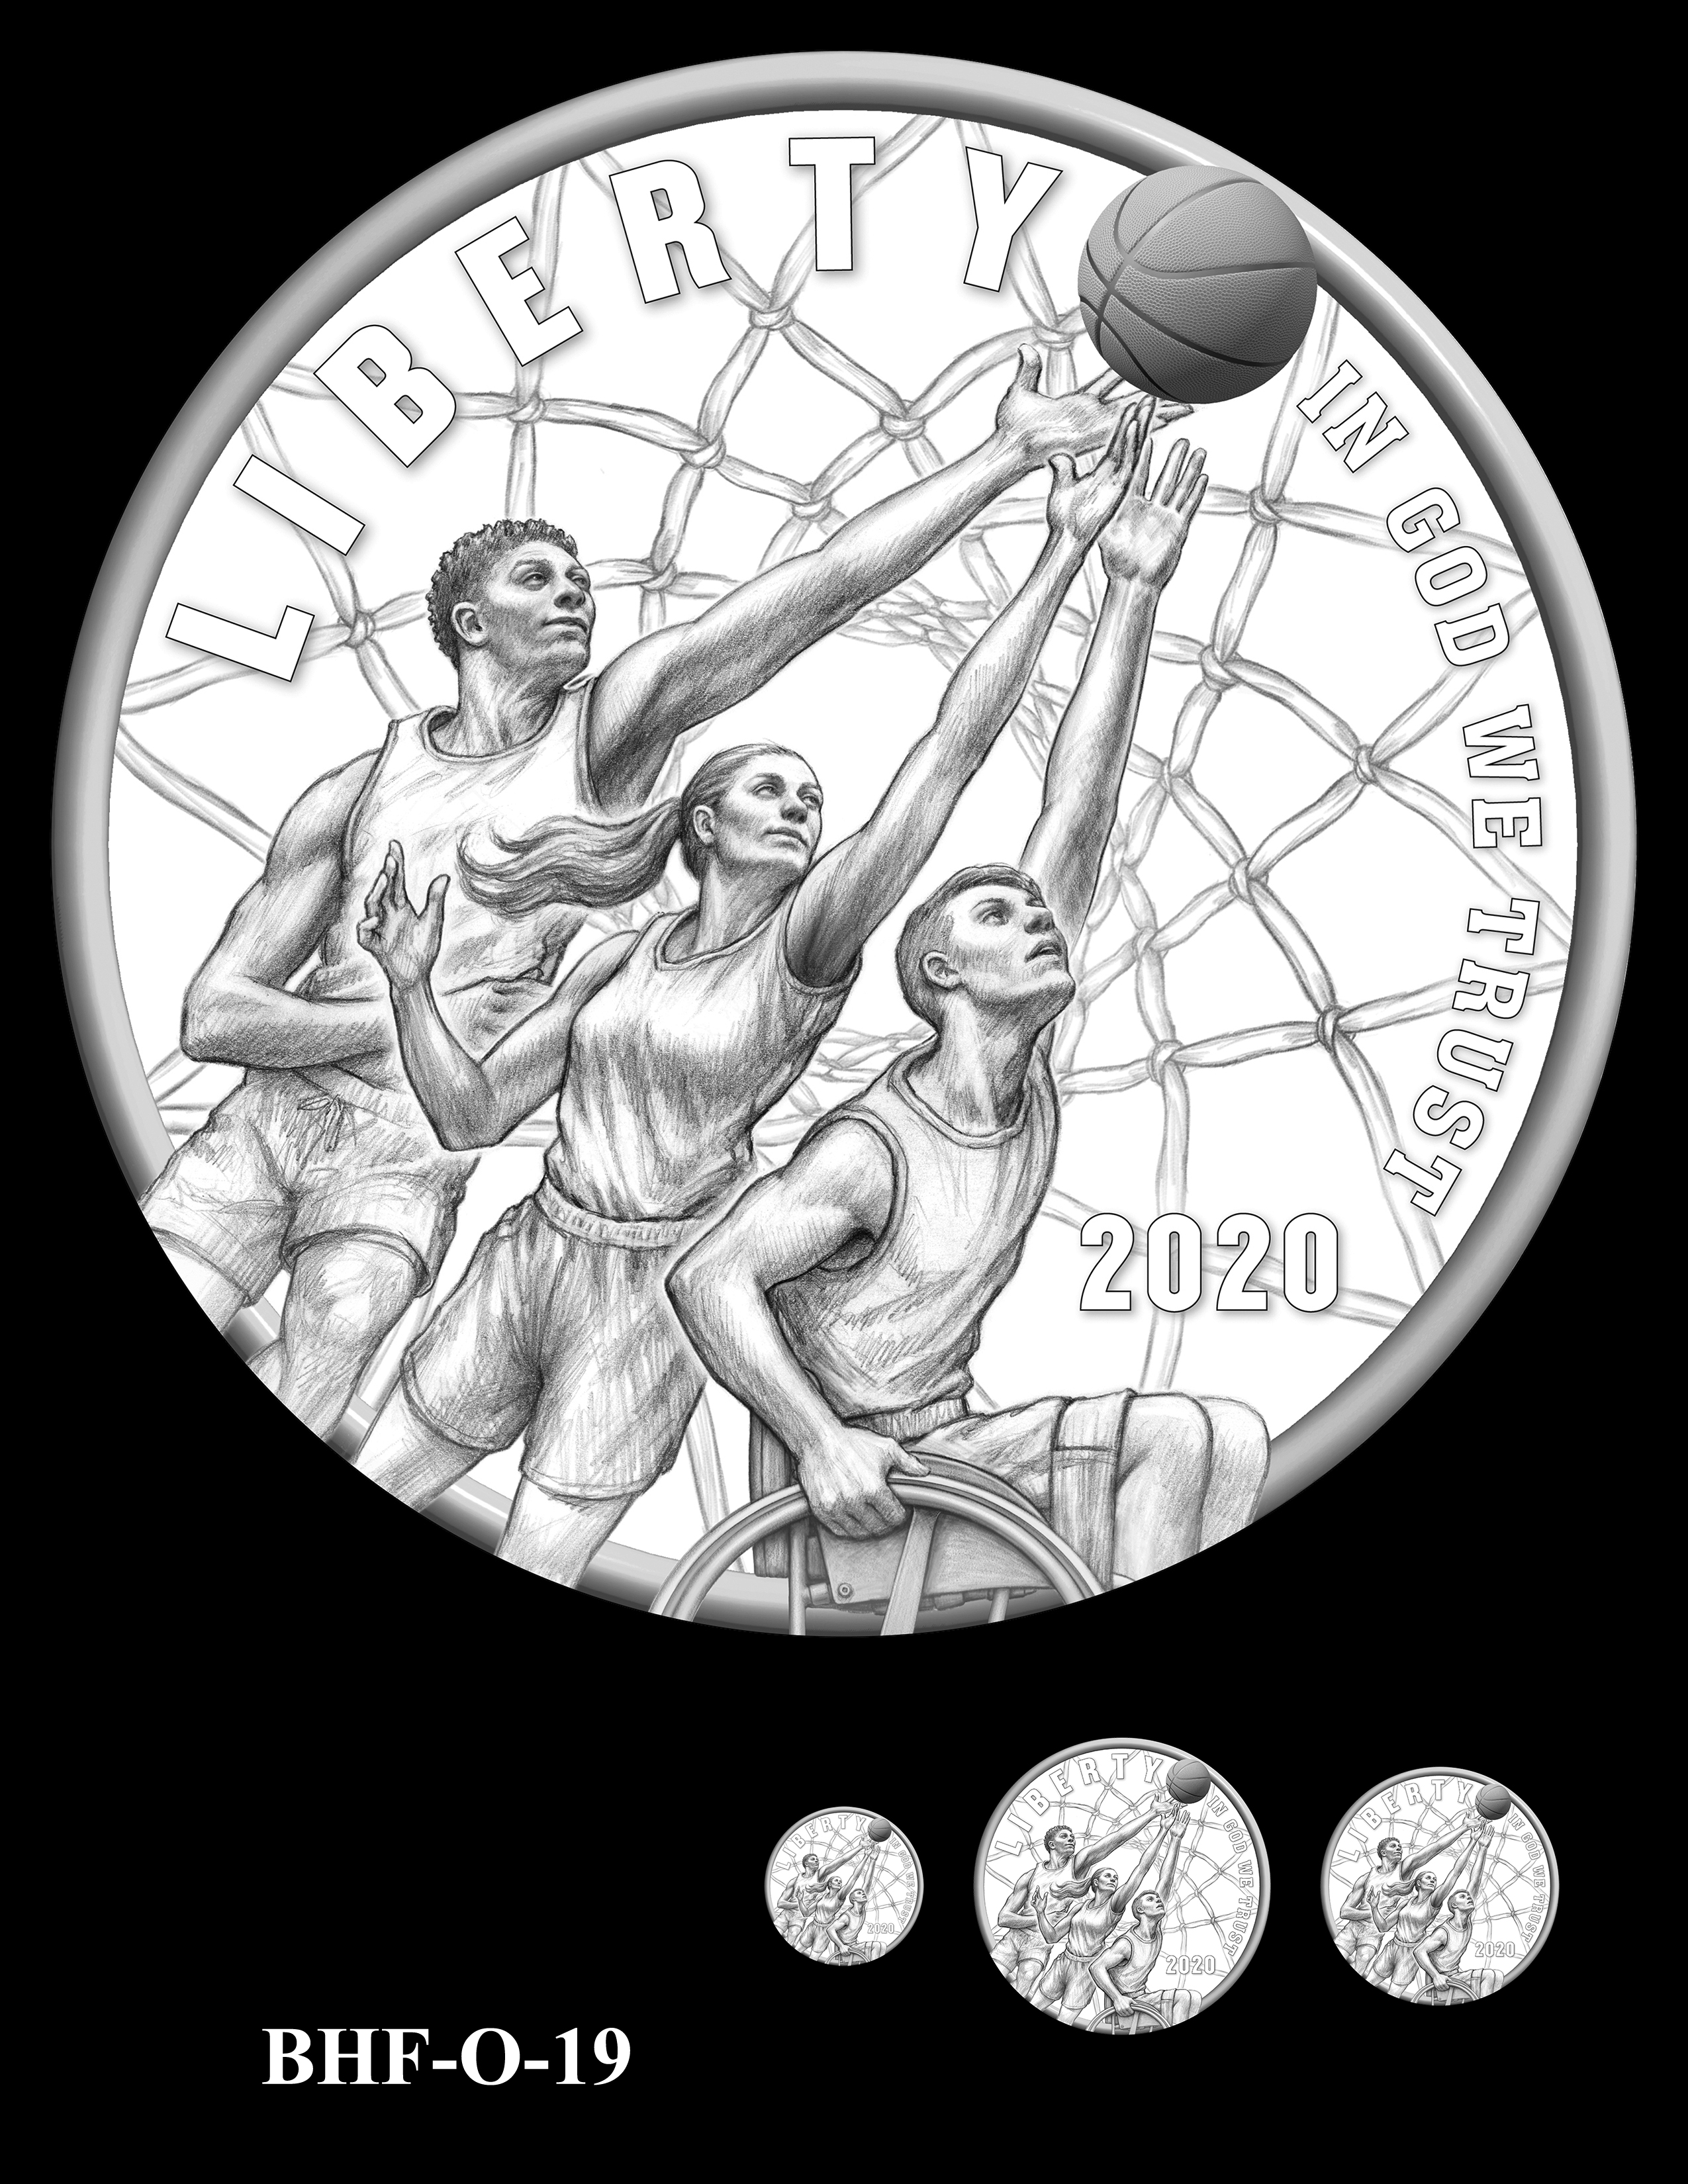 BHF-O-19 -- 2020 Basketball Hall of Fame Commemorative Coin Program - Common Obverse